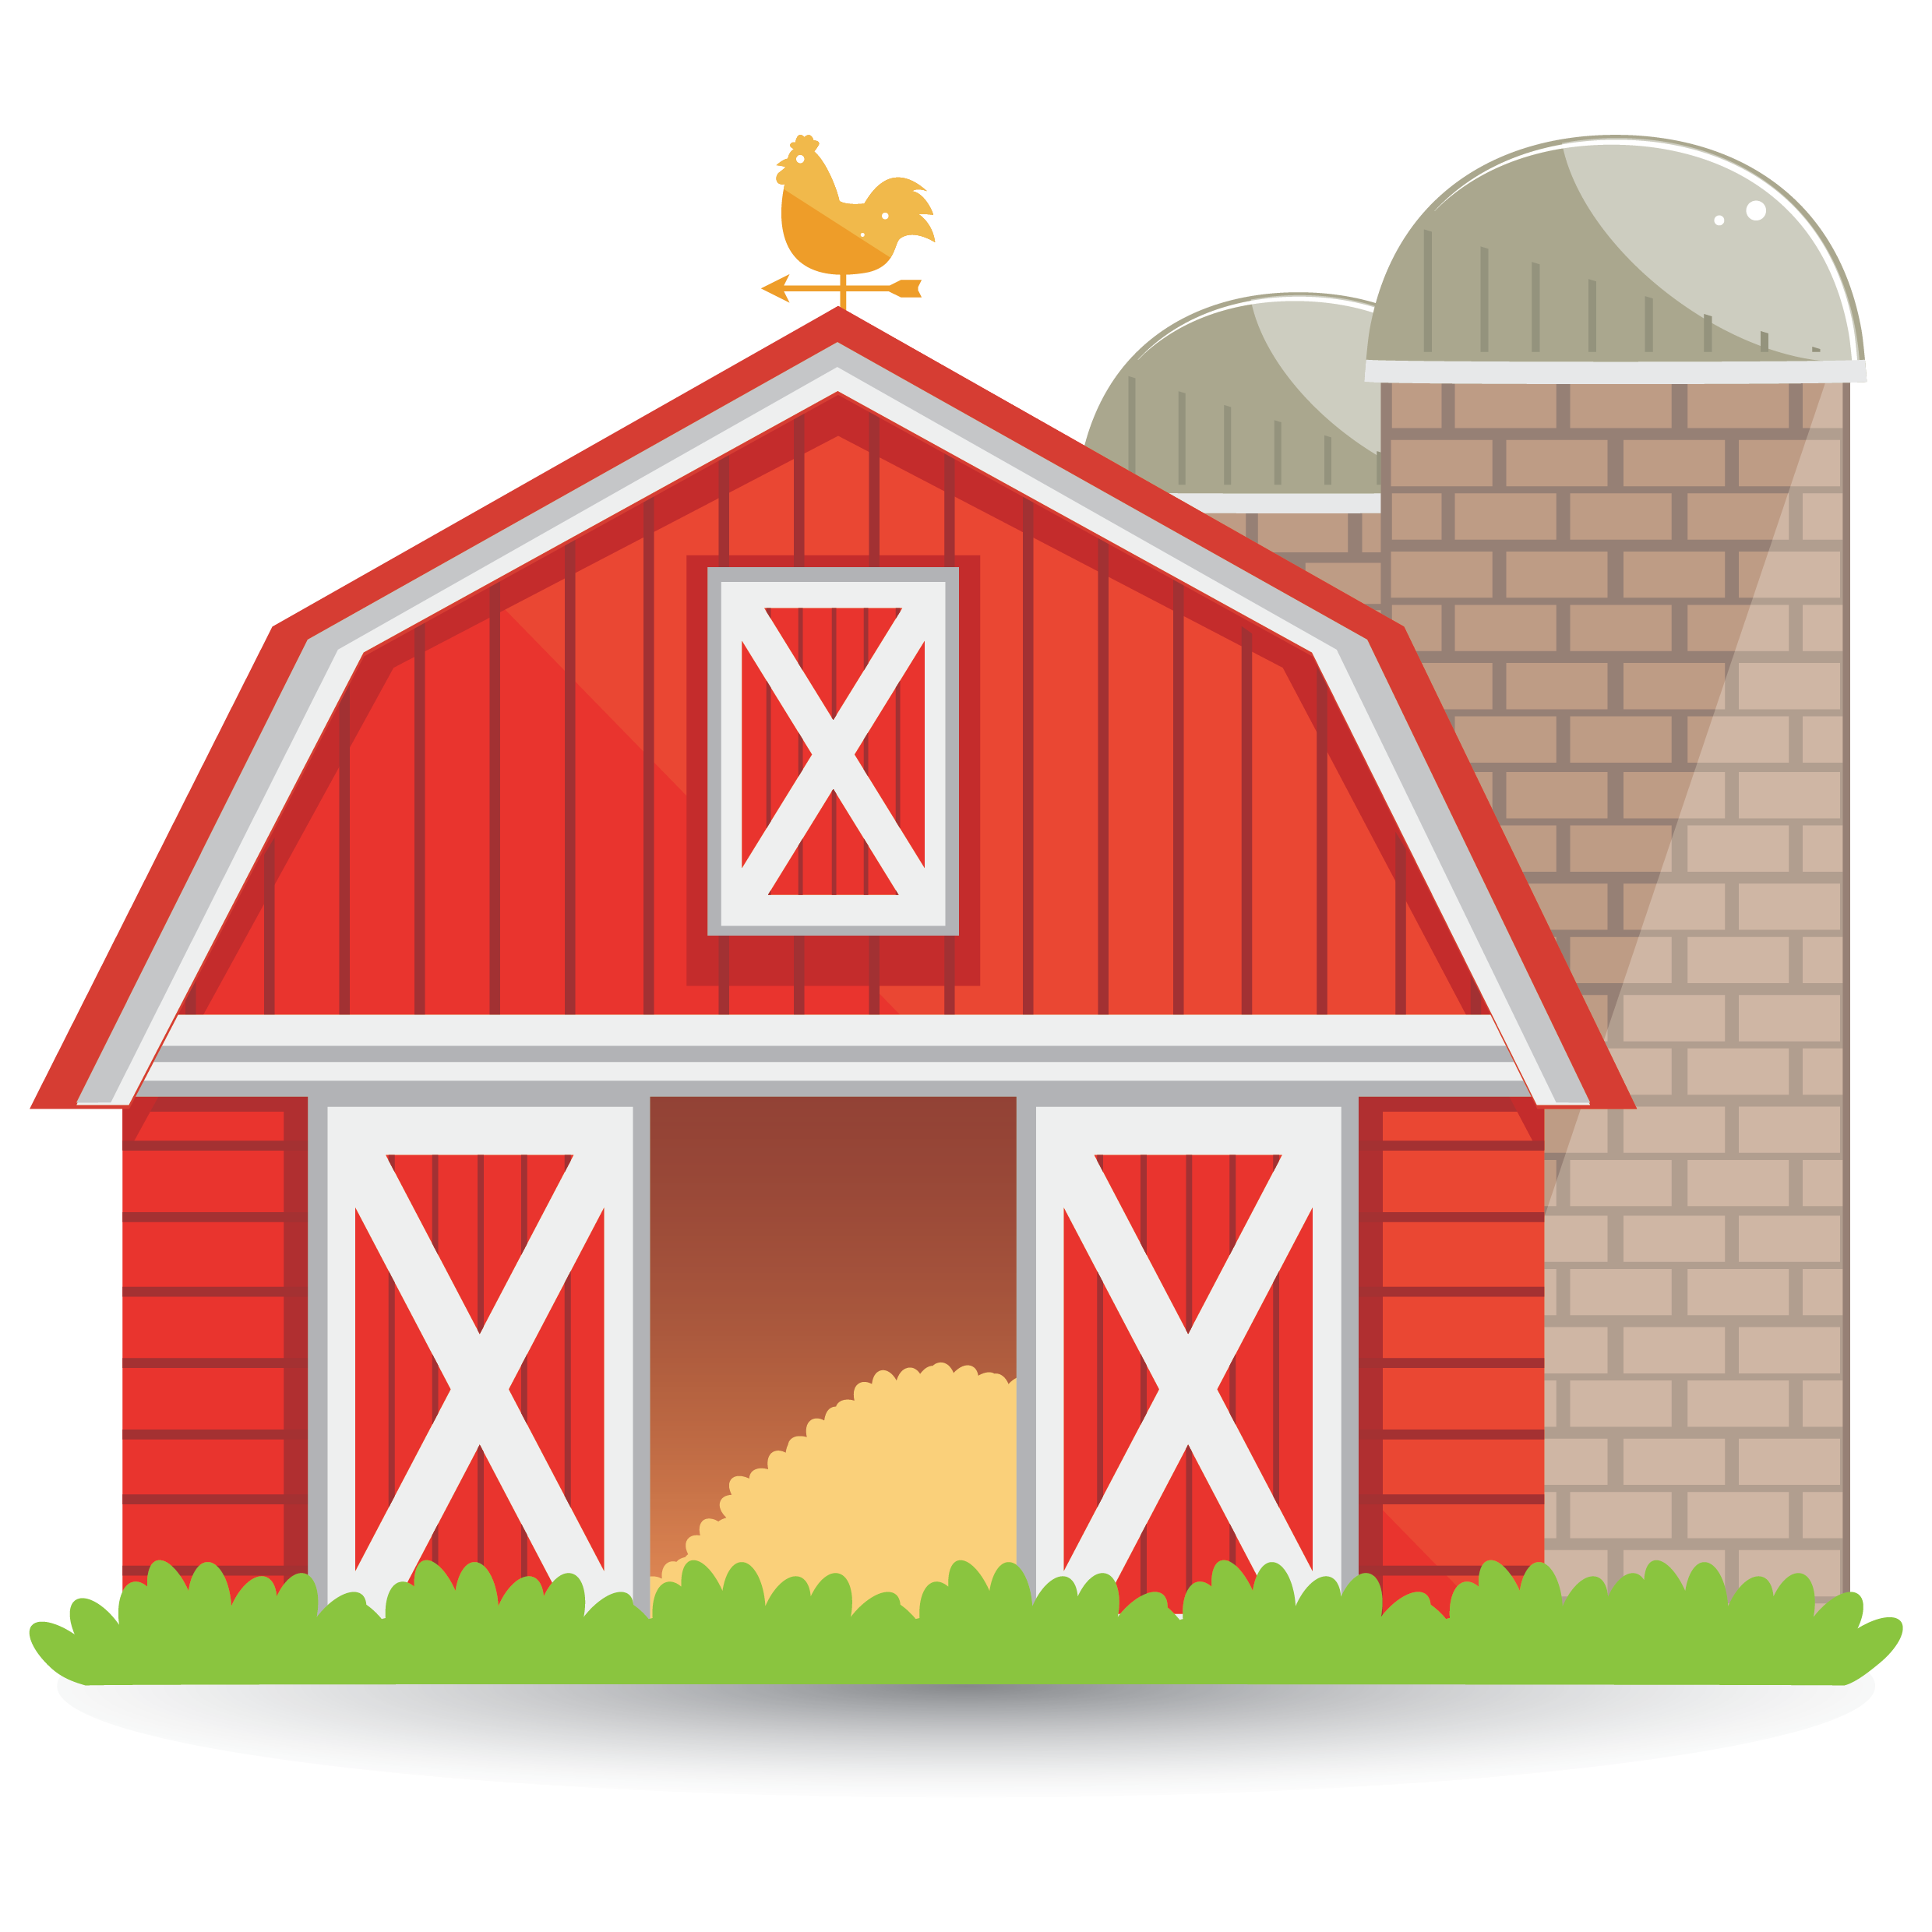 Barn png clipart. Graphics illustrations free download